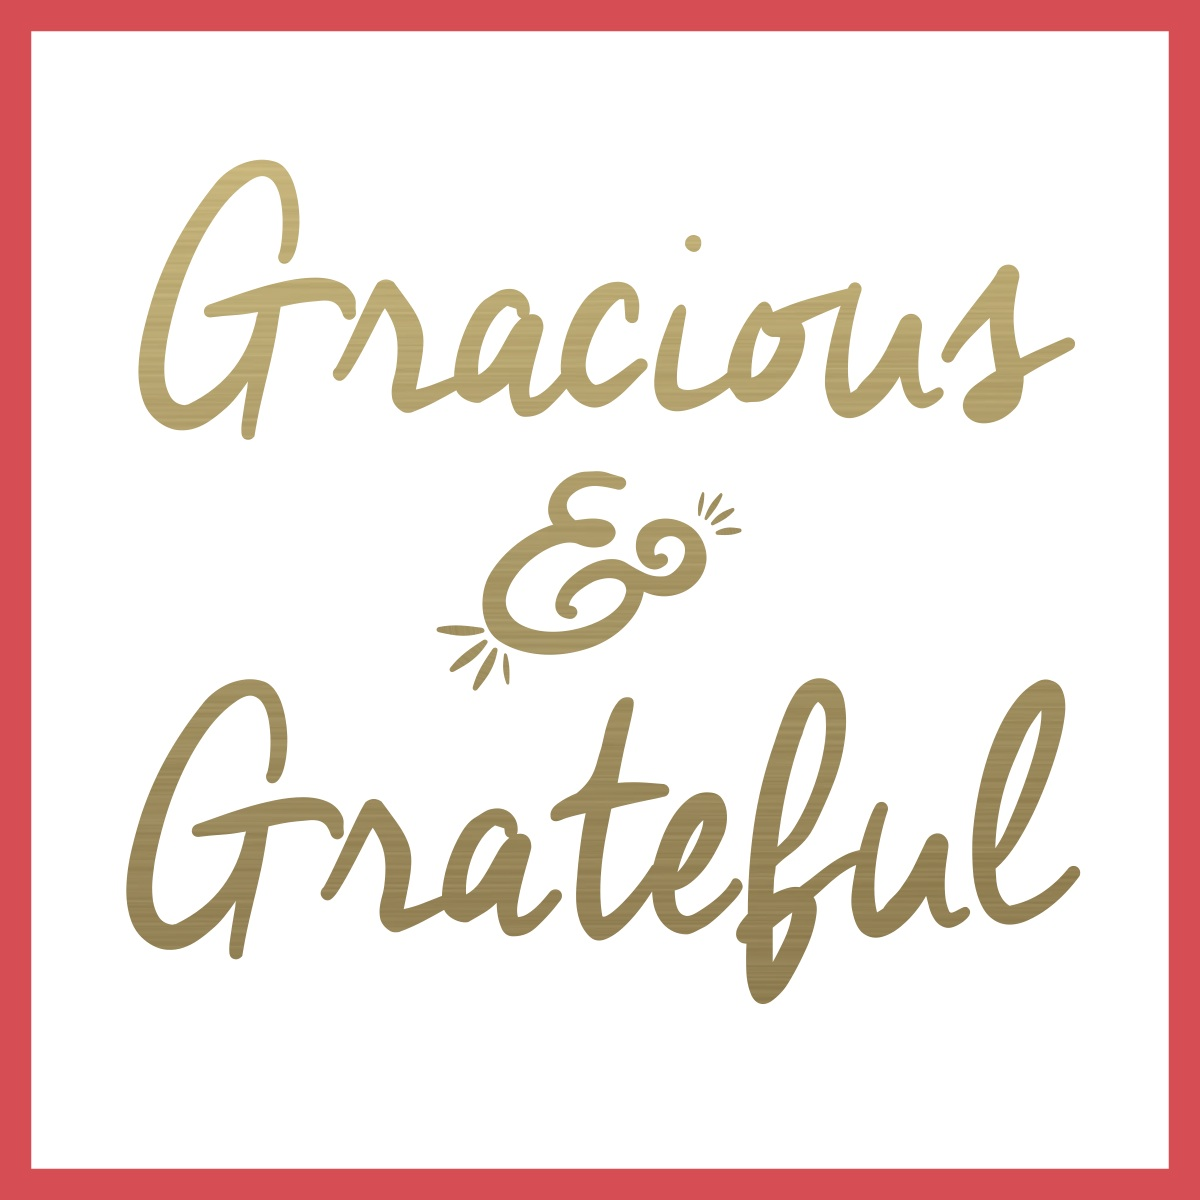 graciousandgrateful